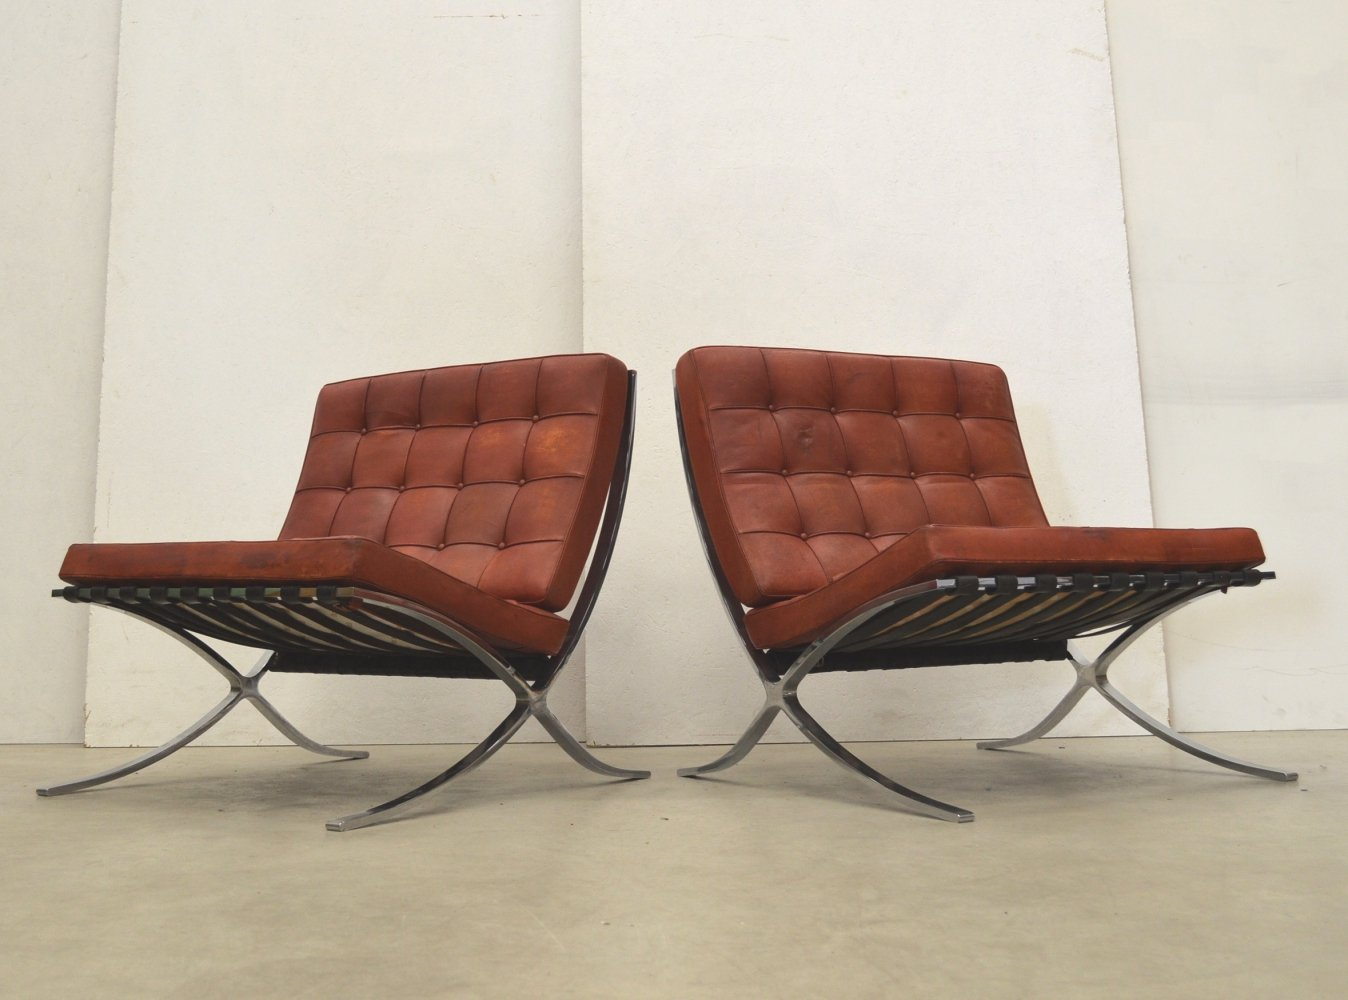 Early Vintage Barcelona Chairs by Mies van der Rohe for Knoll, 1950s